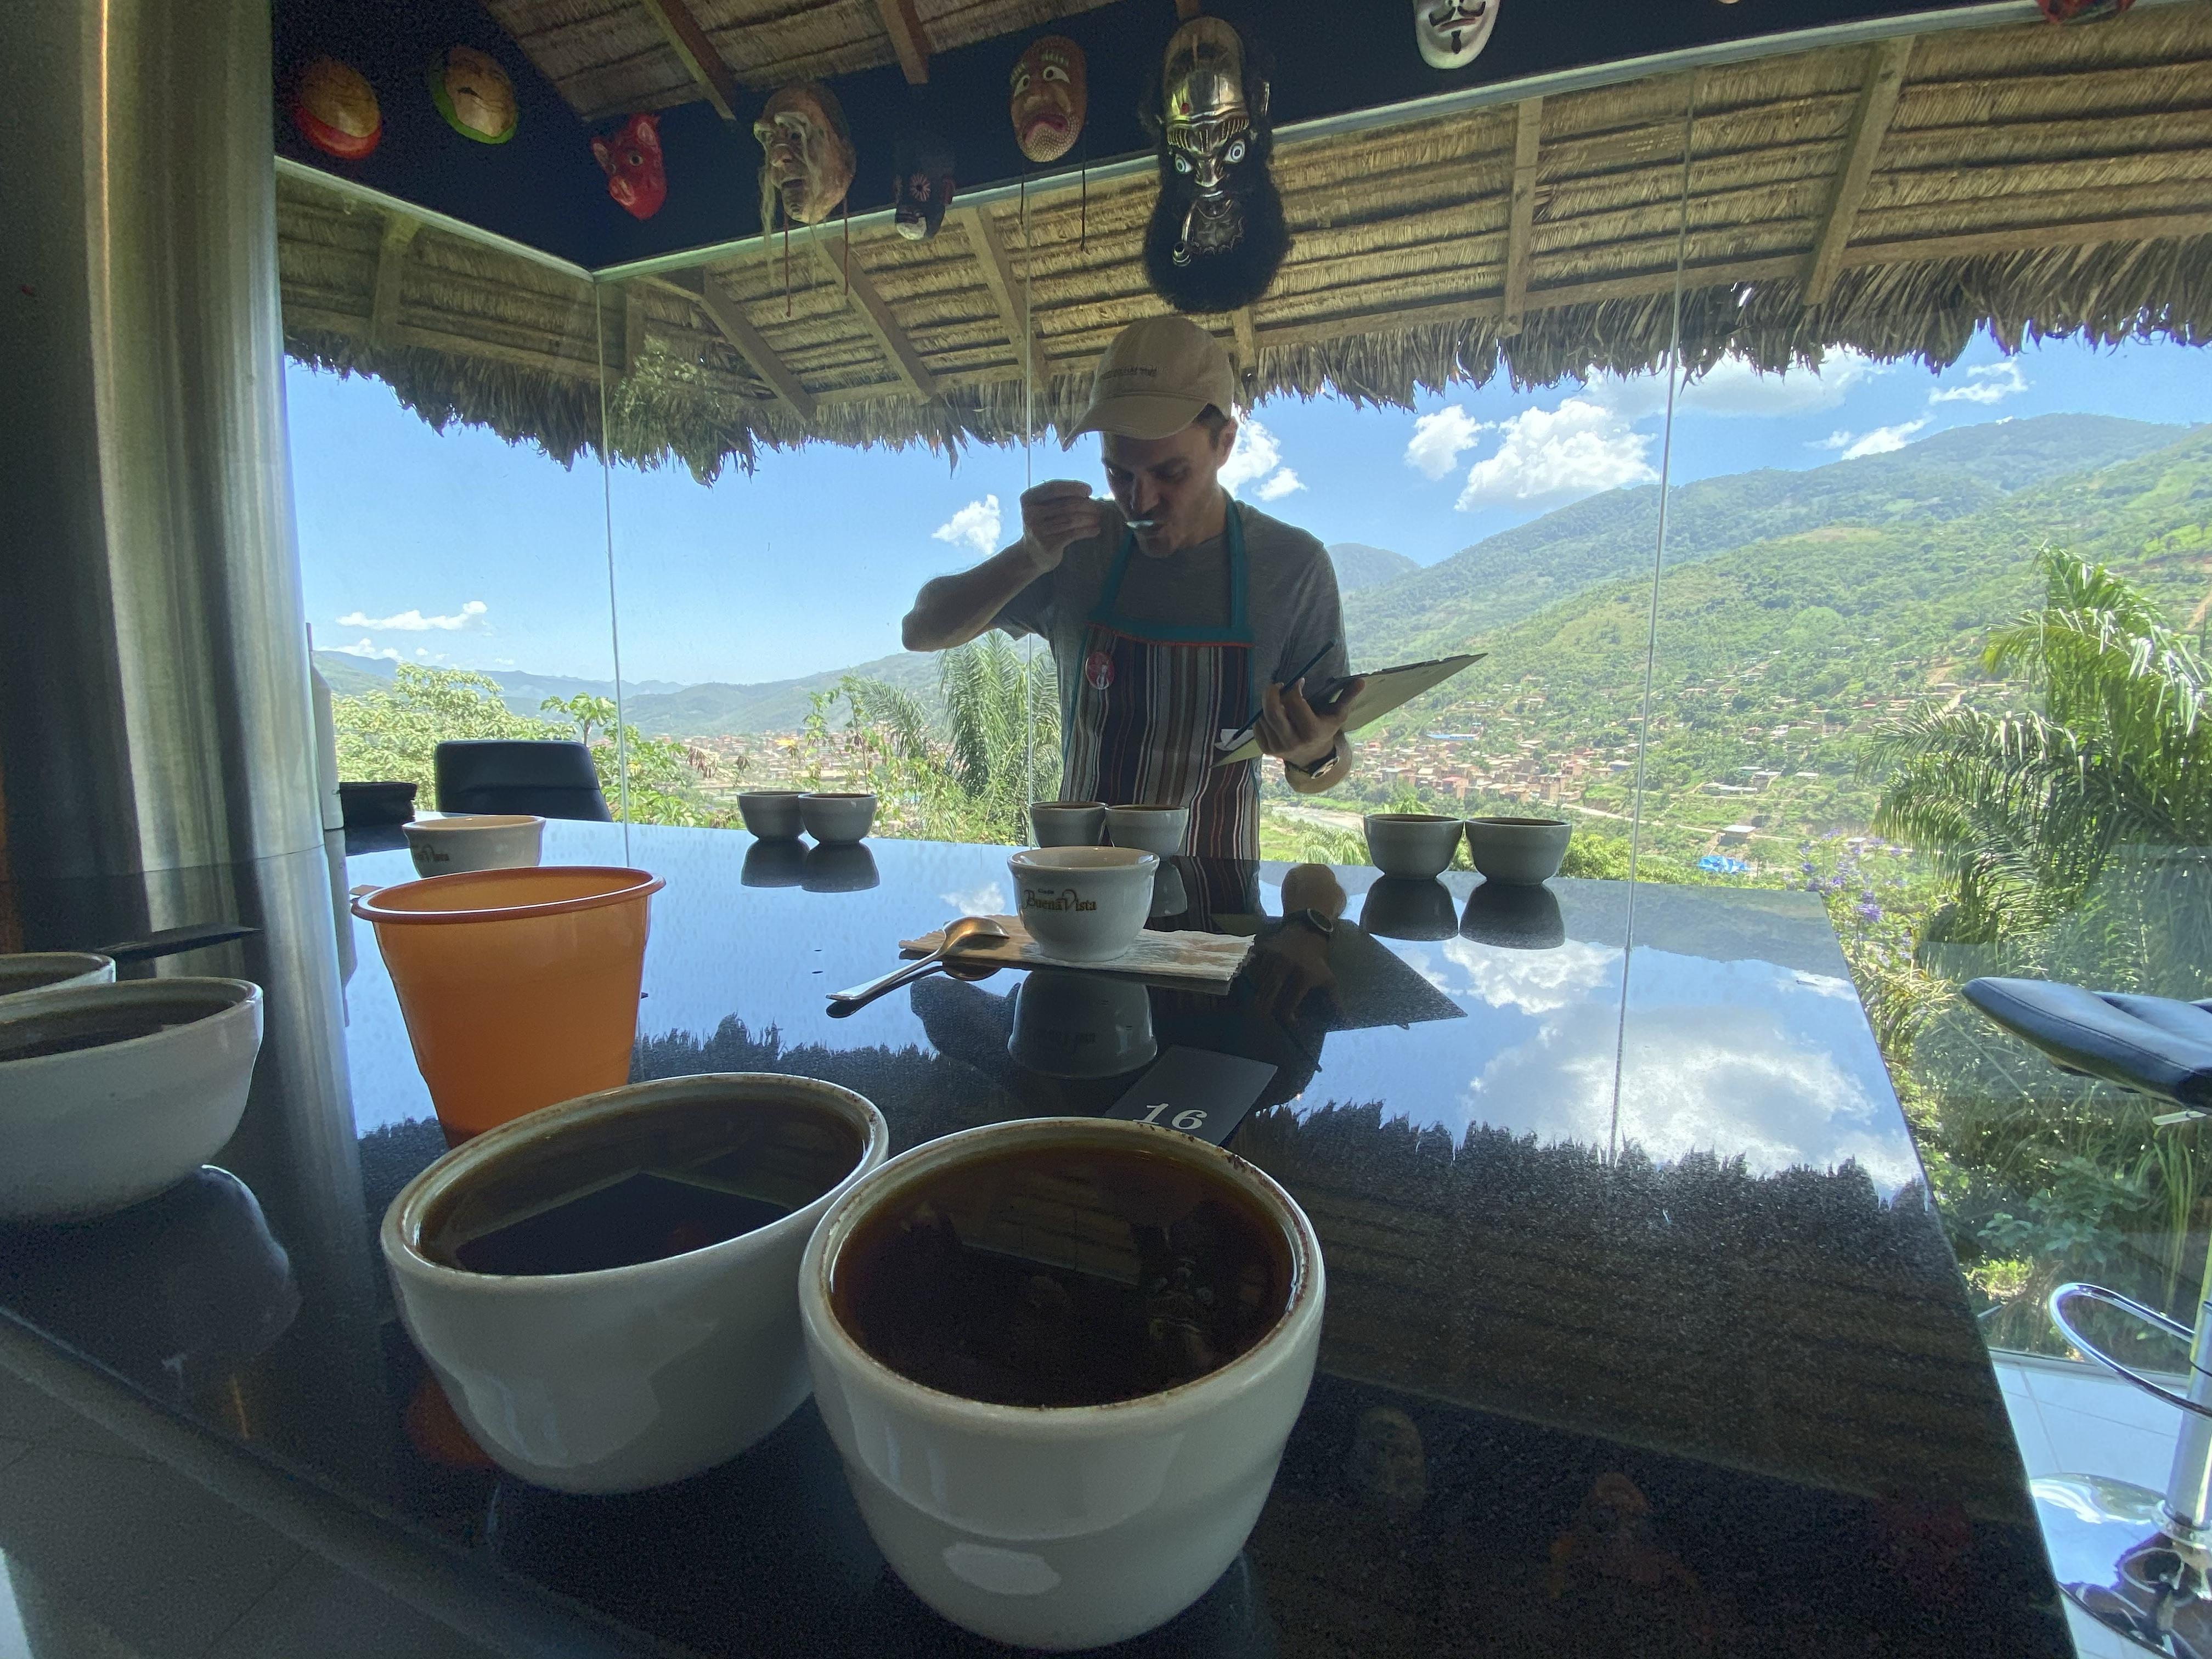 Casper cupping at this beautiful location